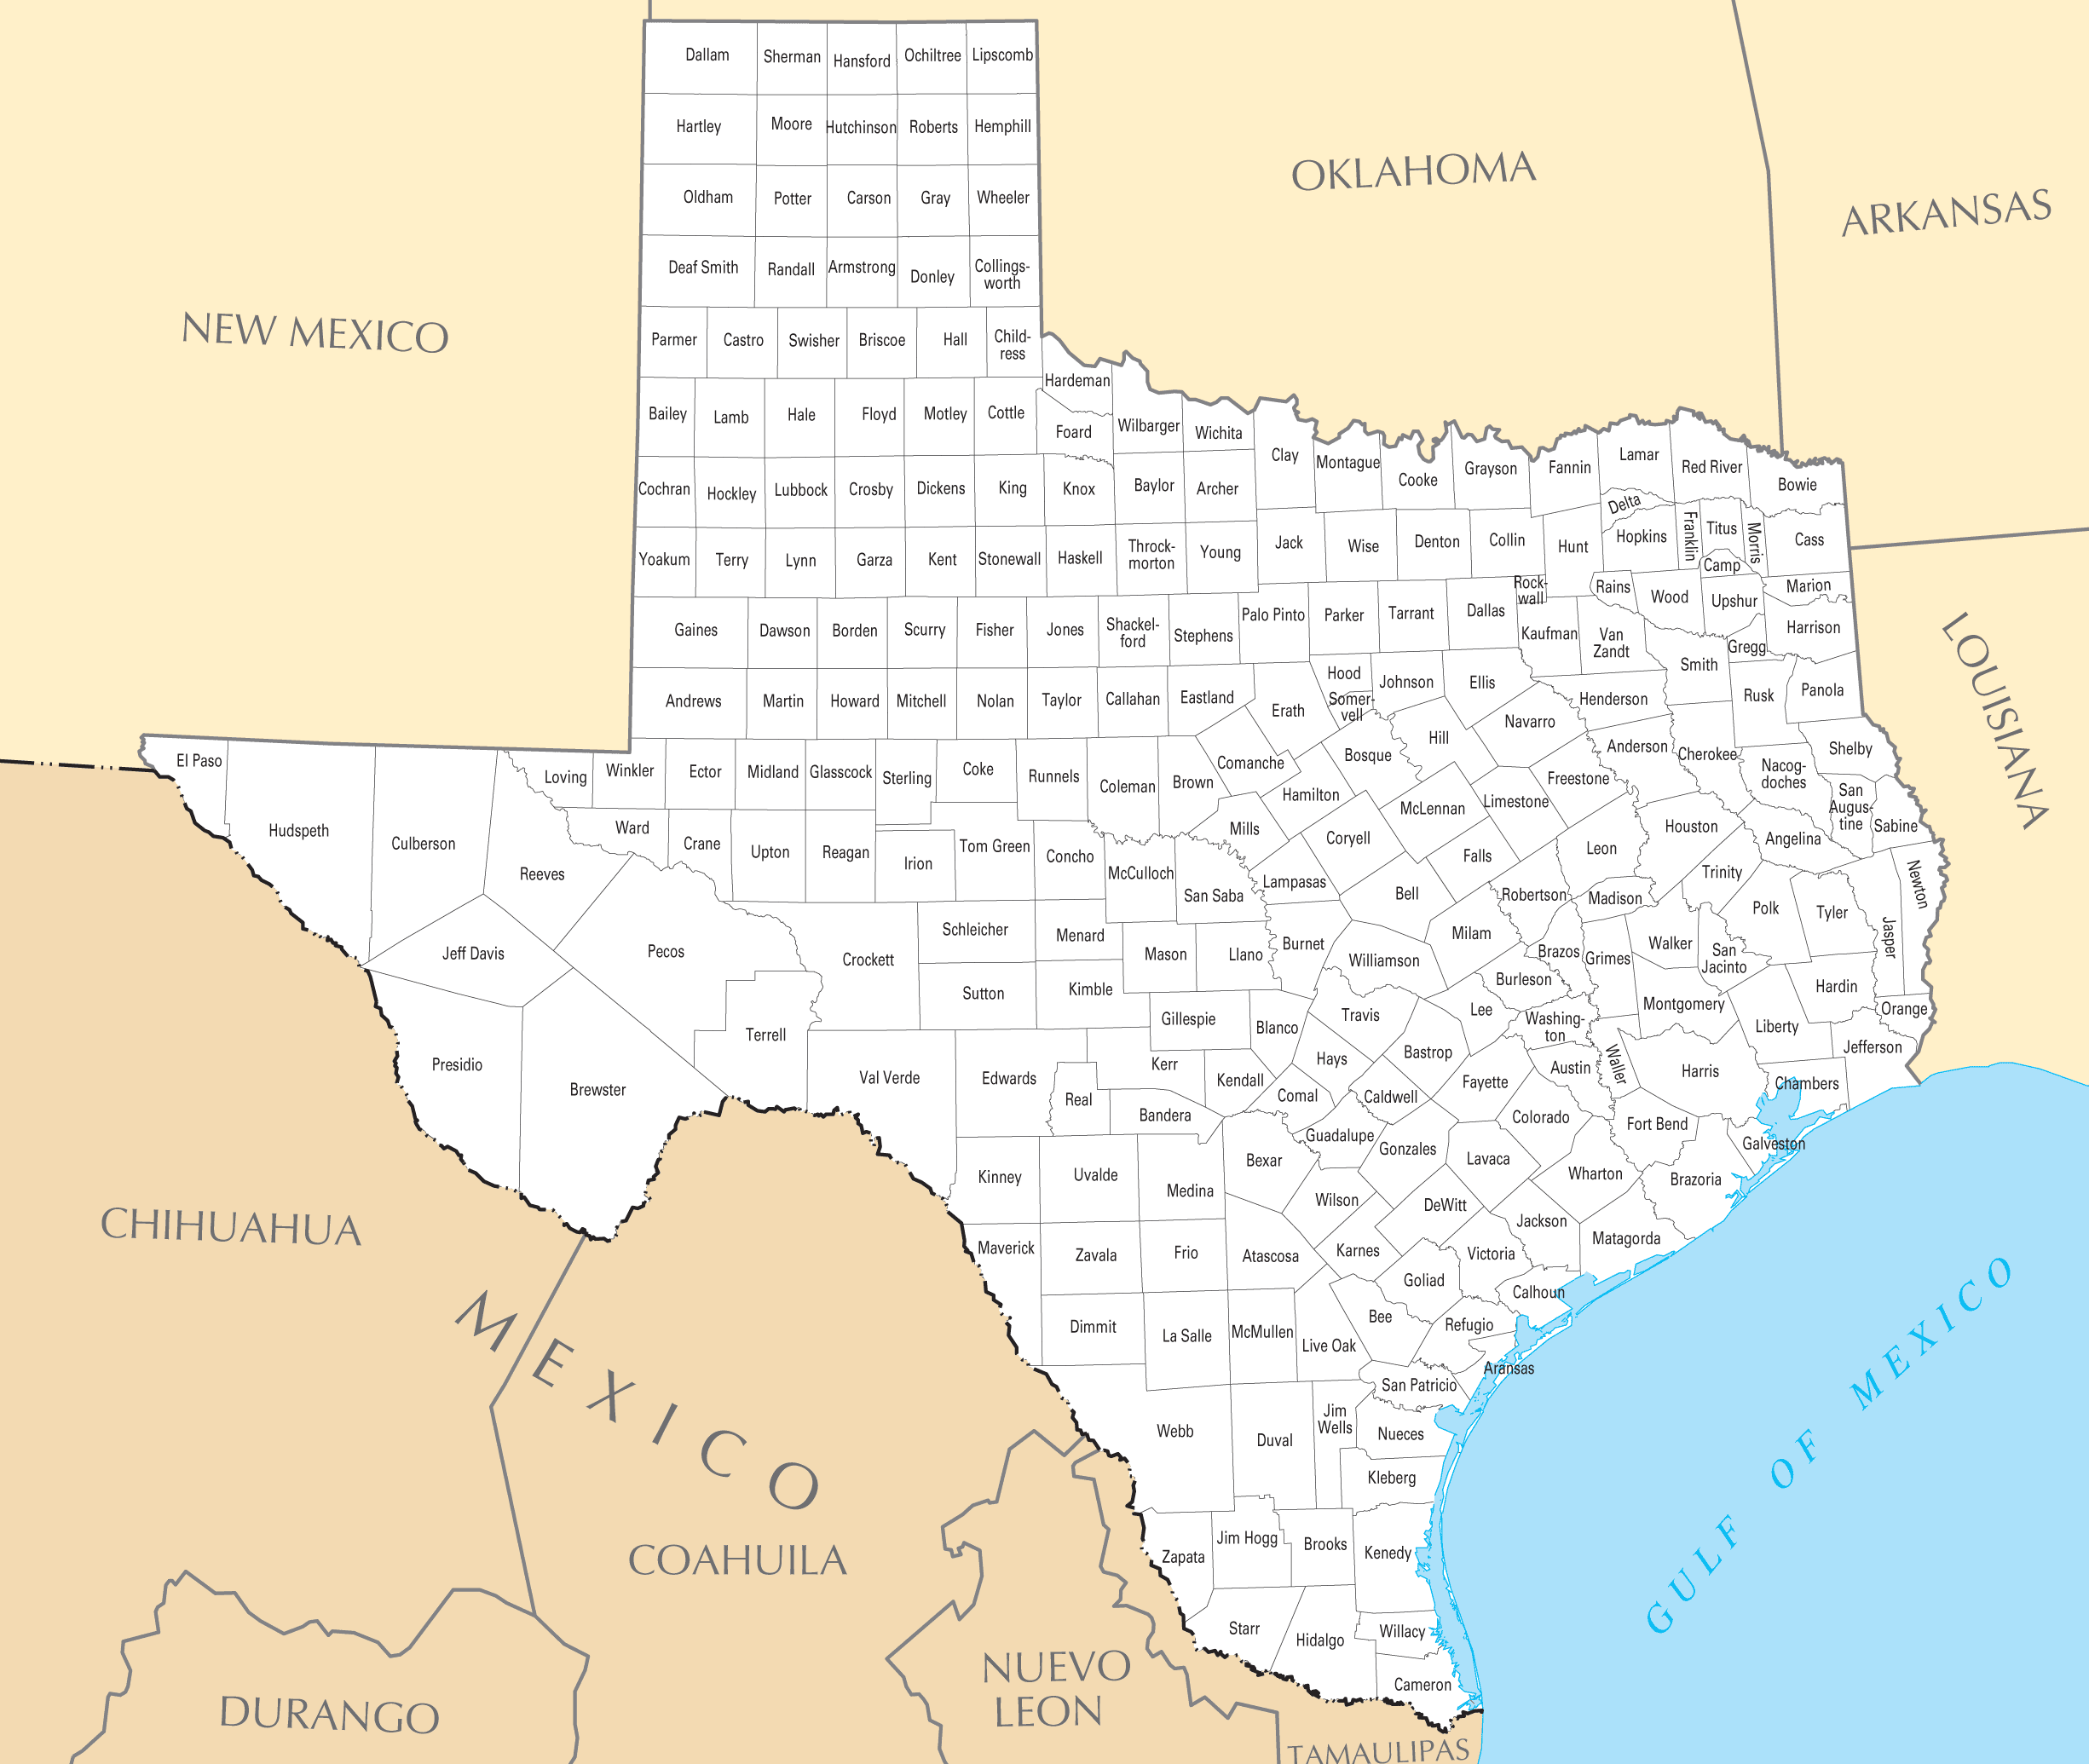 Texas County Map Texas County Map • Mapsof.net Texas County Map